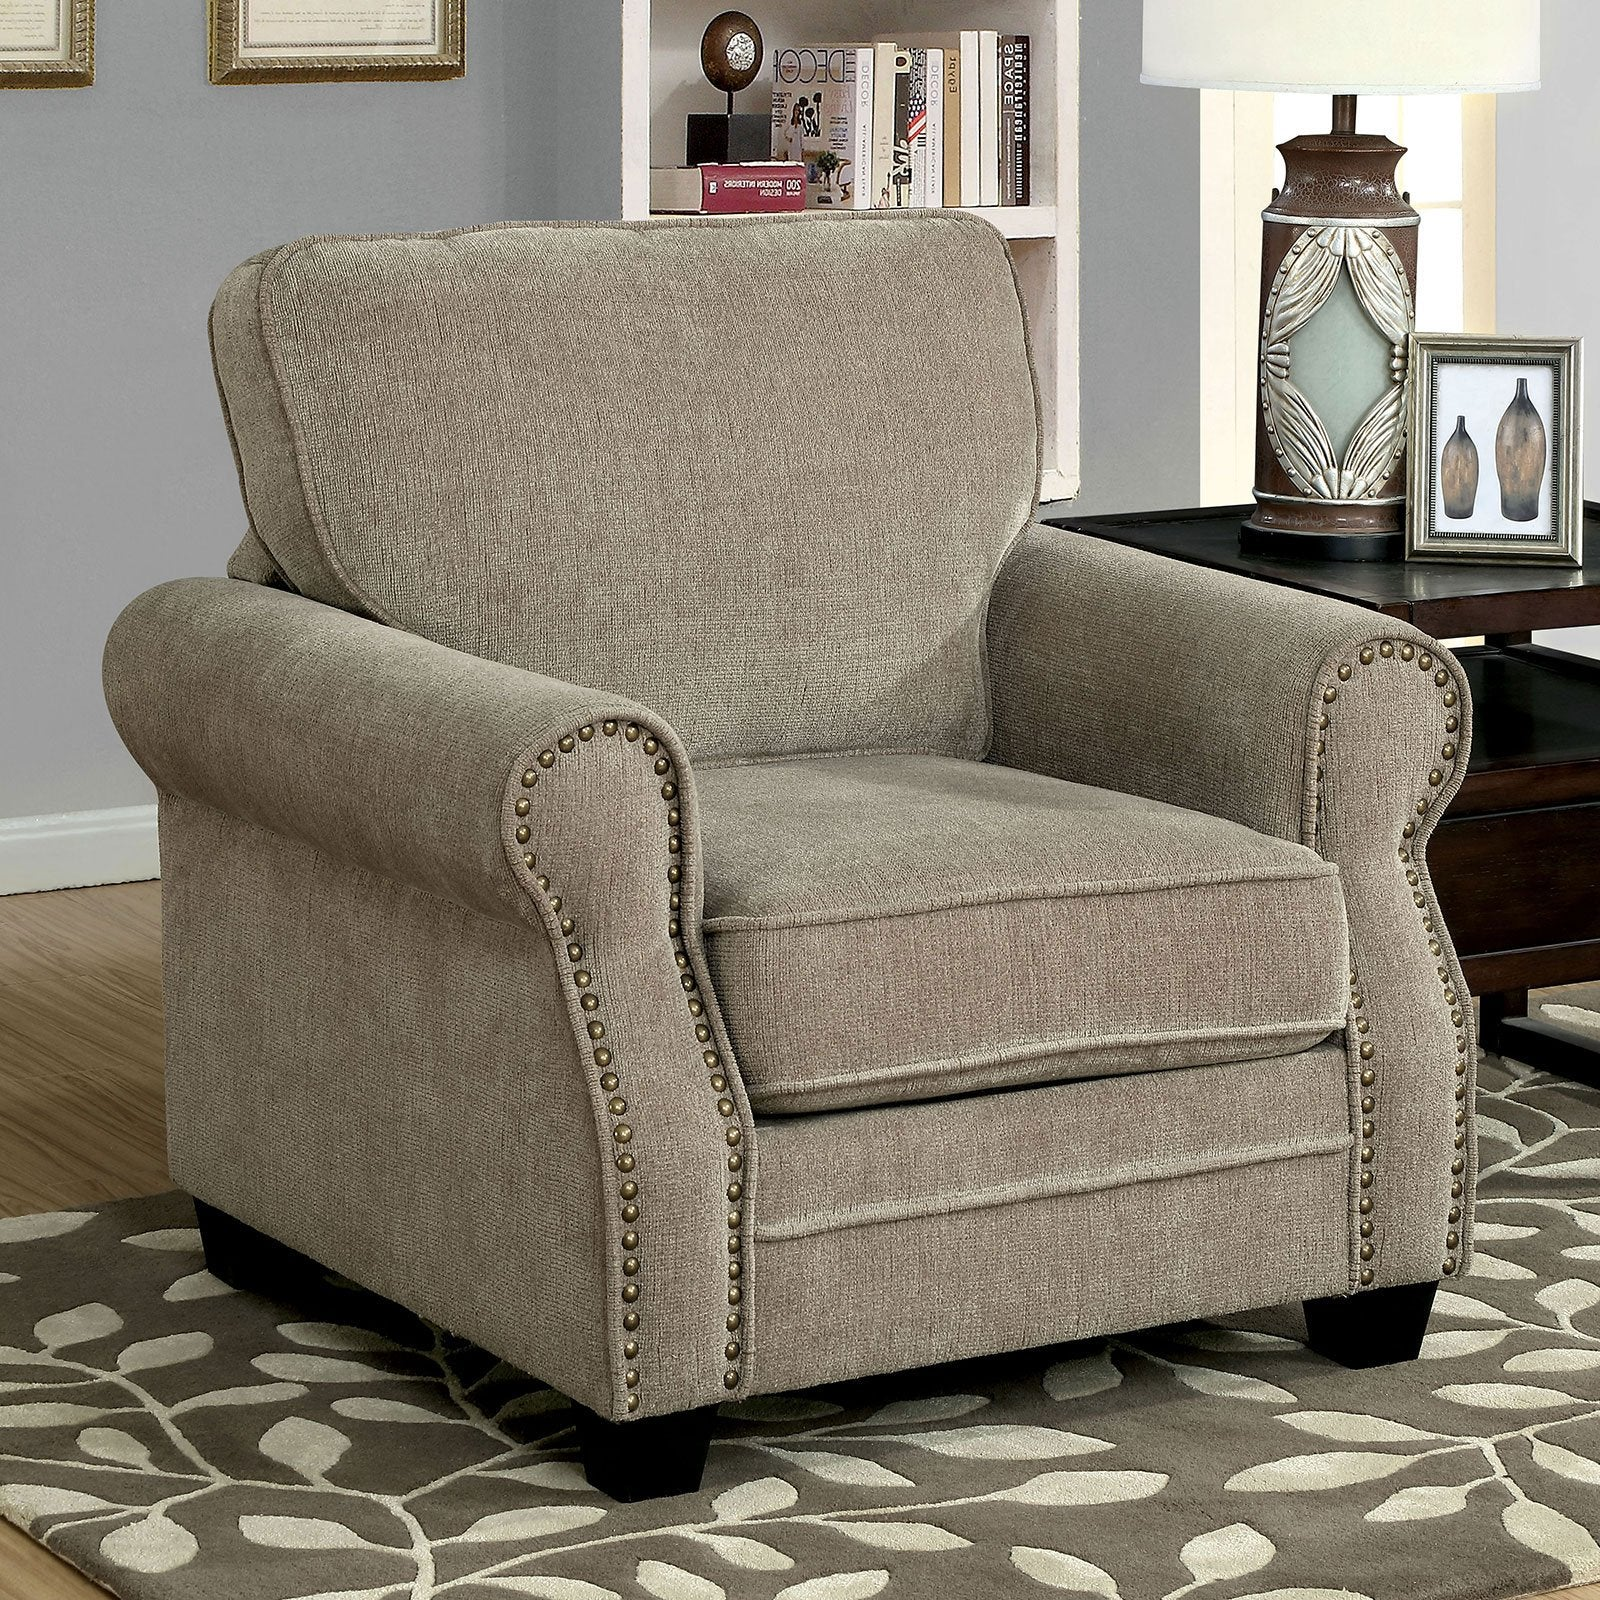 LYNNE Transitional Chair - InteriorDesignsToGo.com